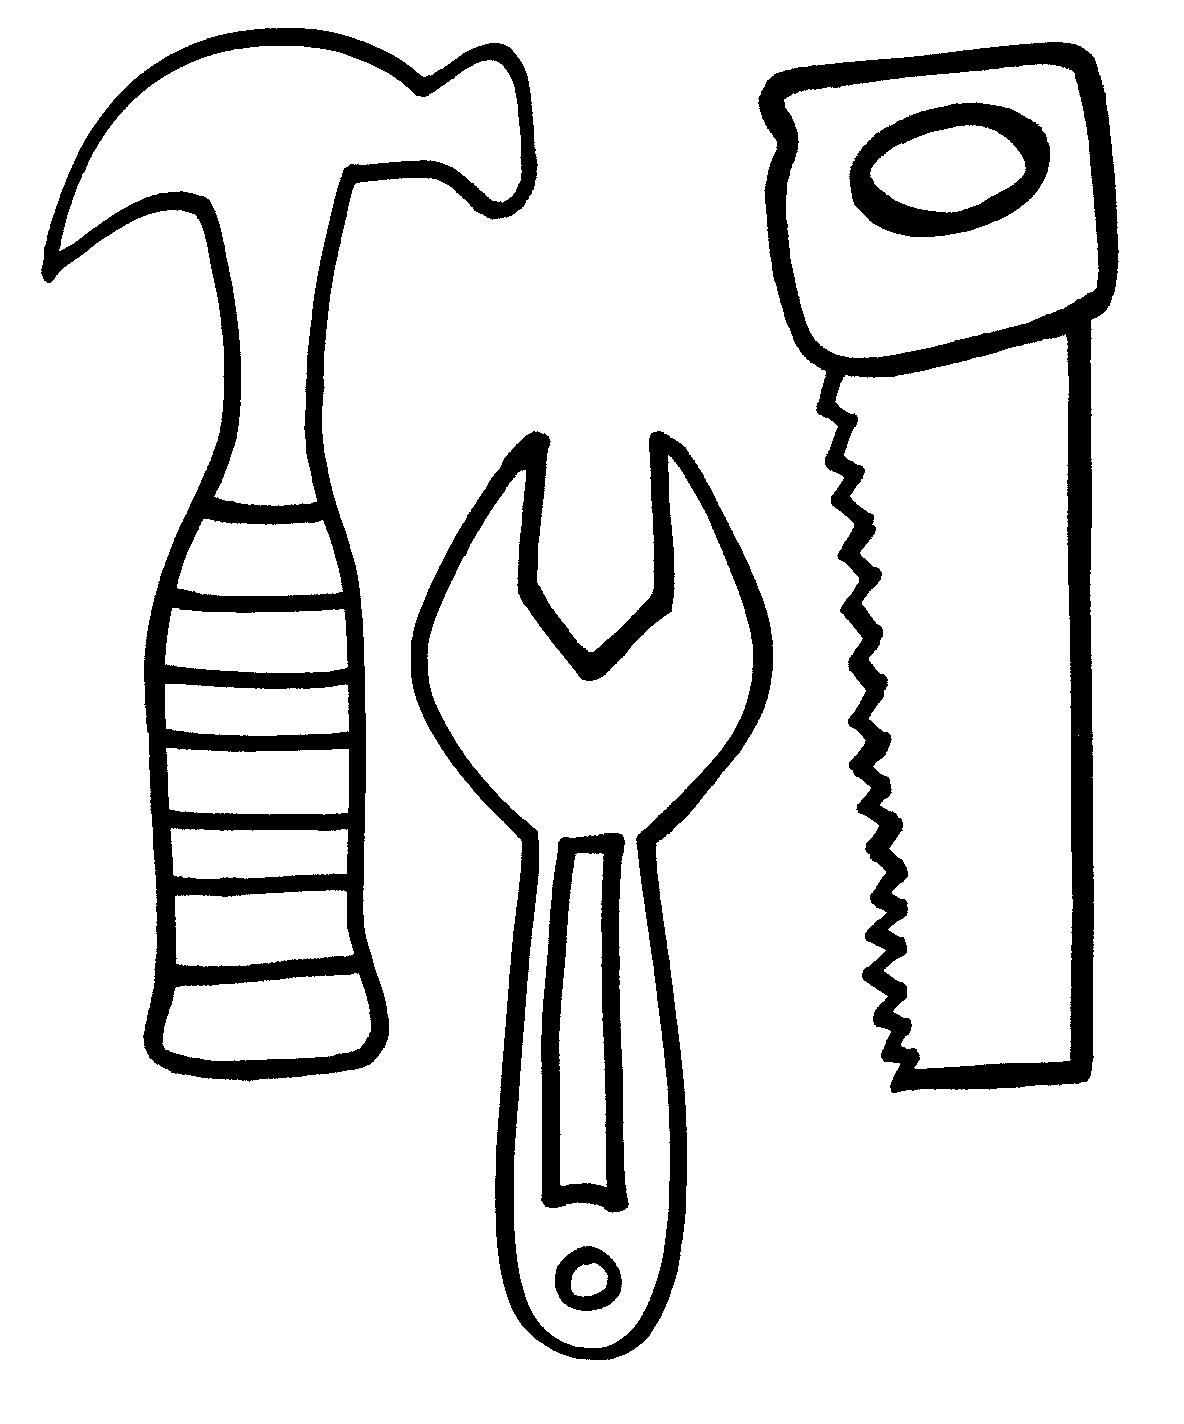 1184x1424 Thank You For Visiting Carpenter Tools Colouring Picture We Hope